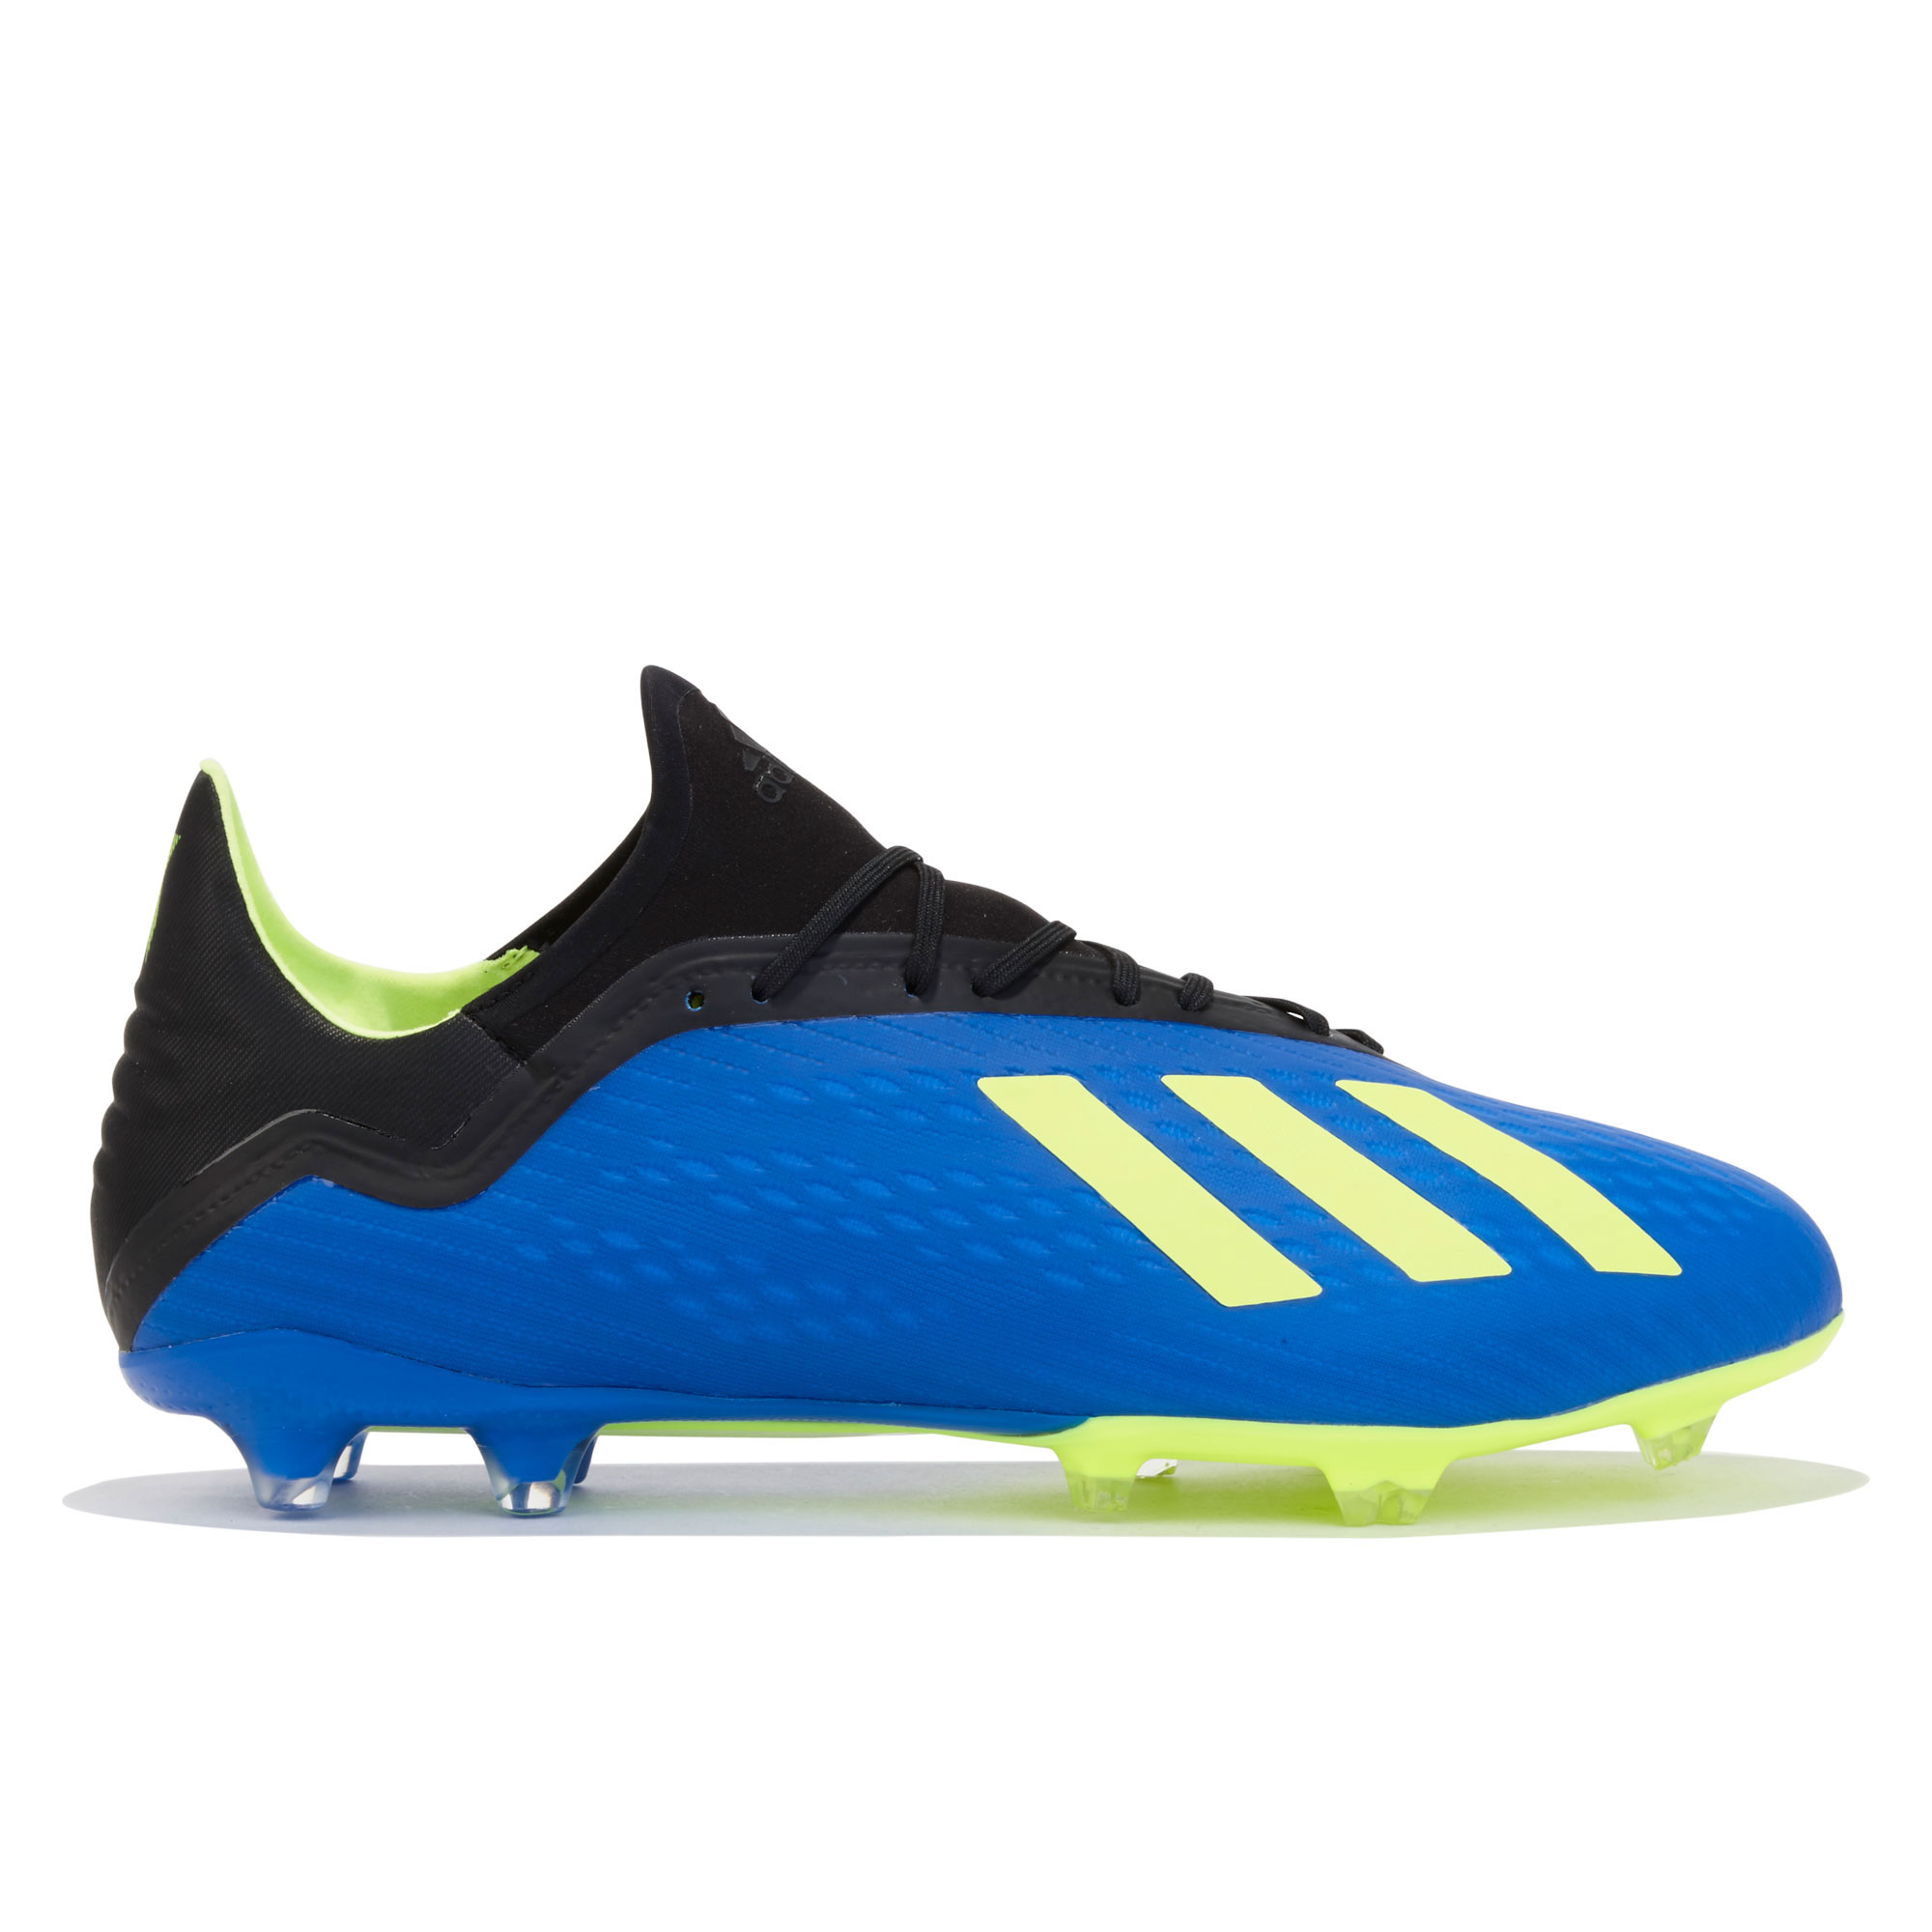 Image of adidas X 18.2 Firm Ground Football Boots - Blue